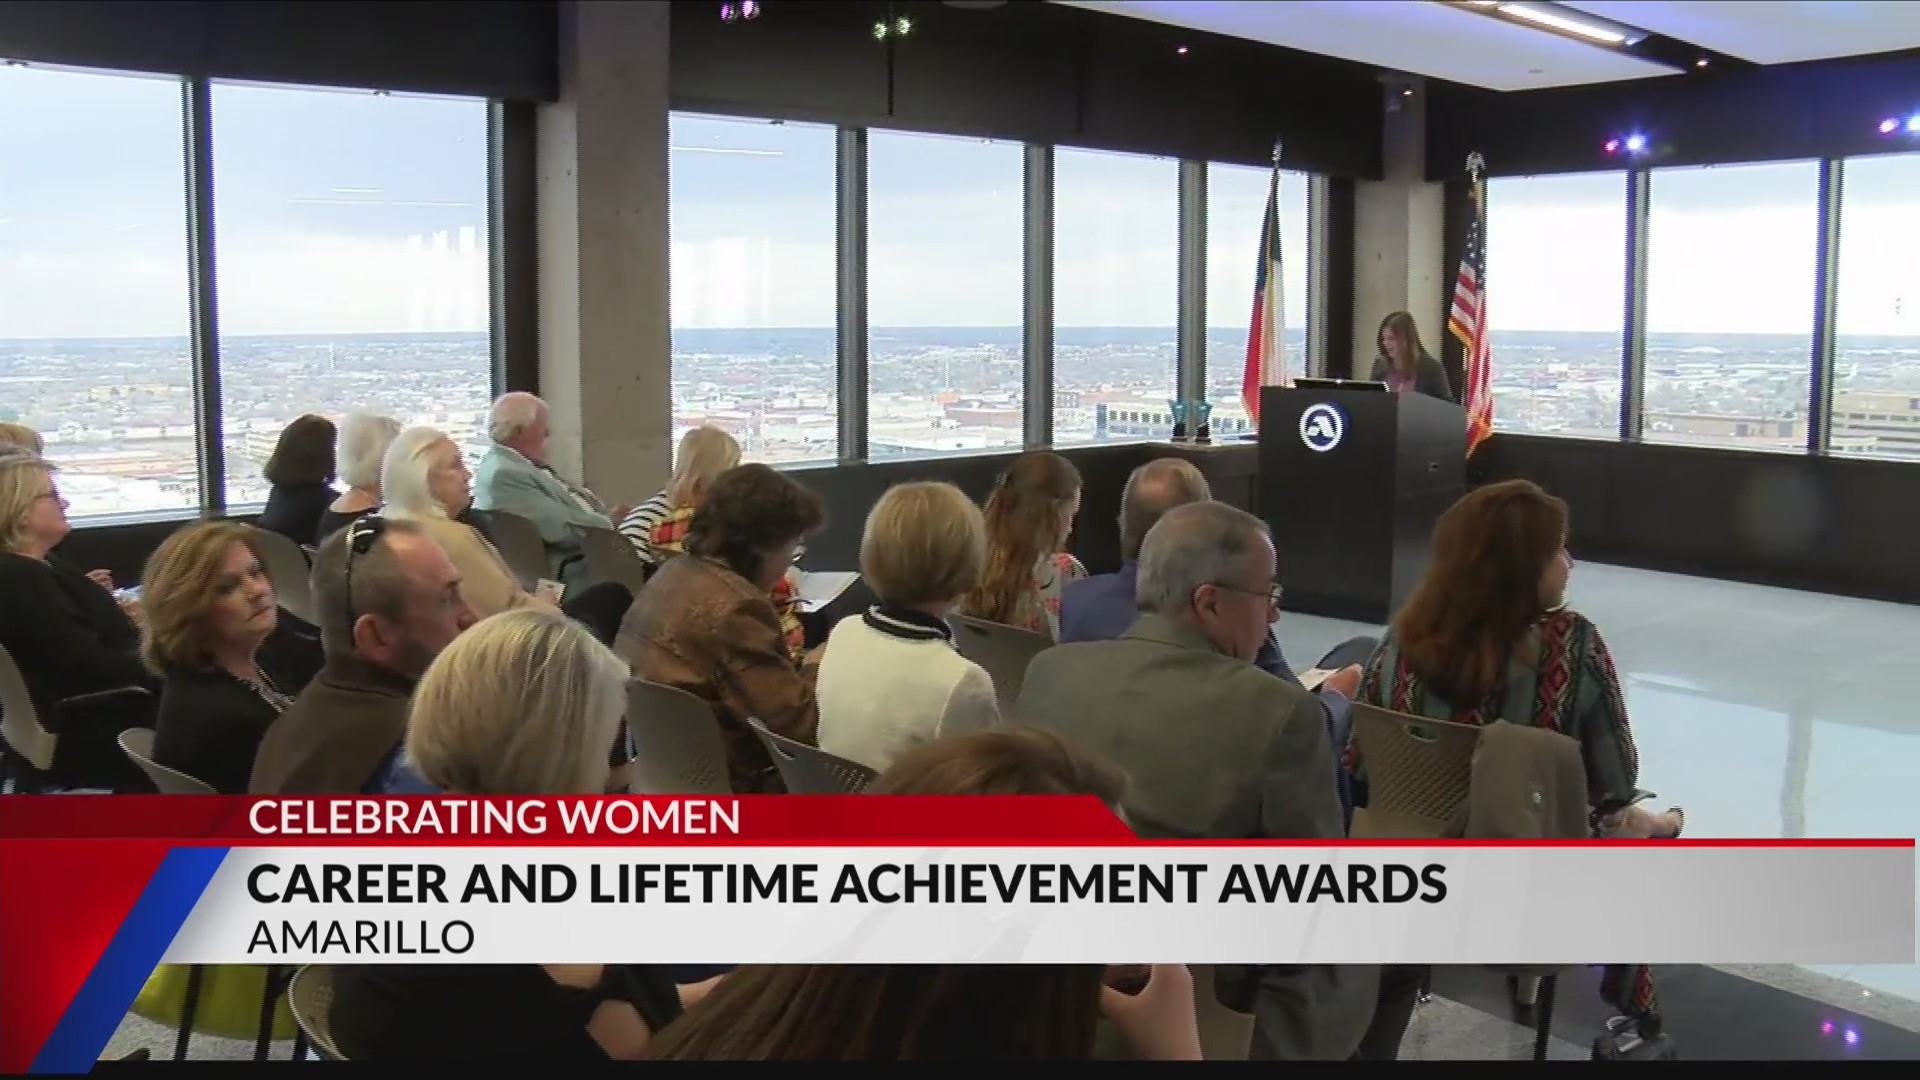 Career and Lifetime Achievement Awards